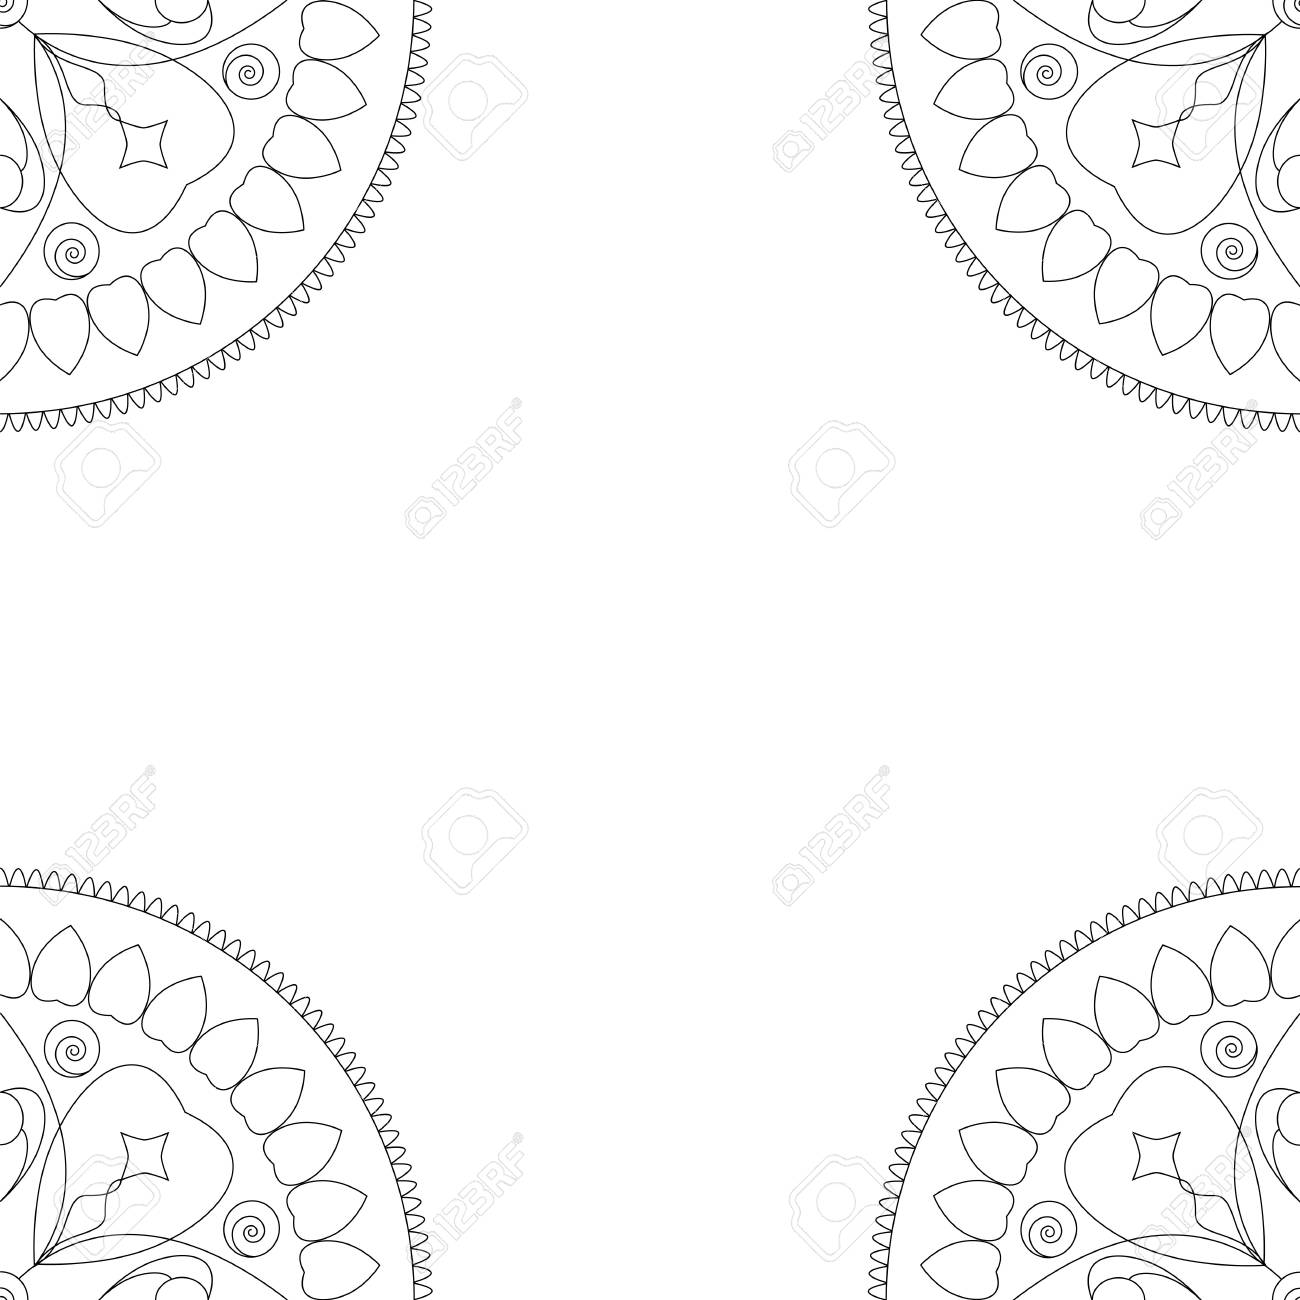 Square Coloring Book Cover Or Background Illustration With Mandala